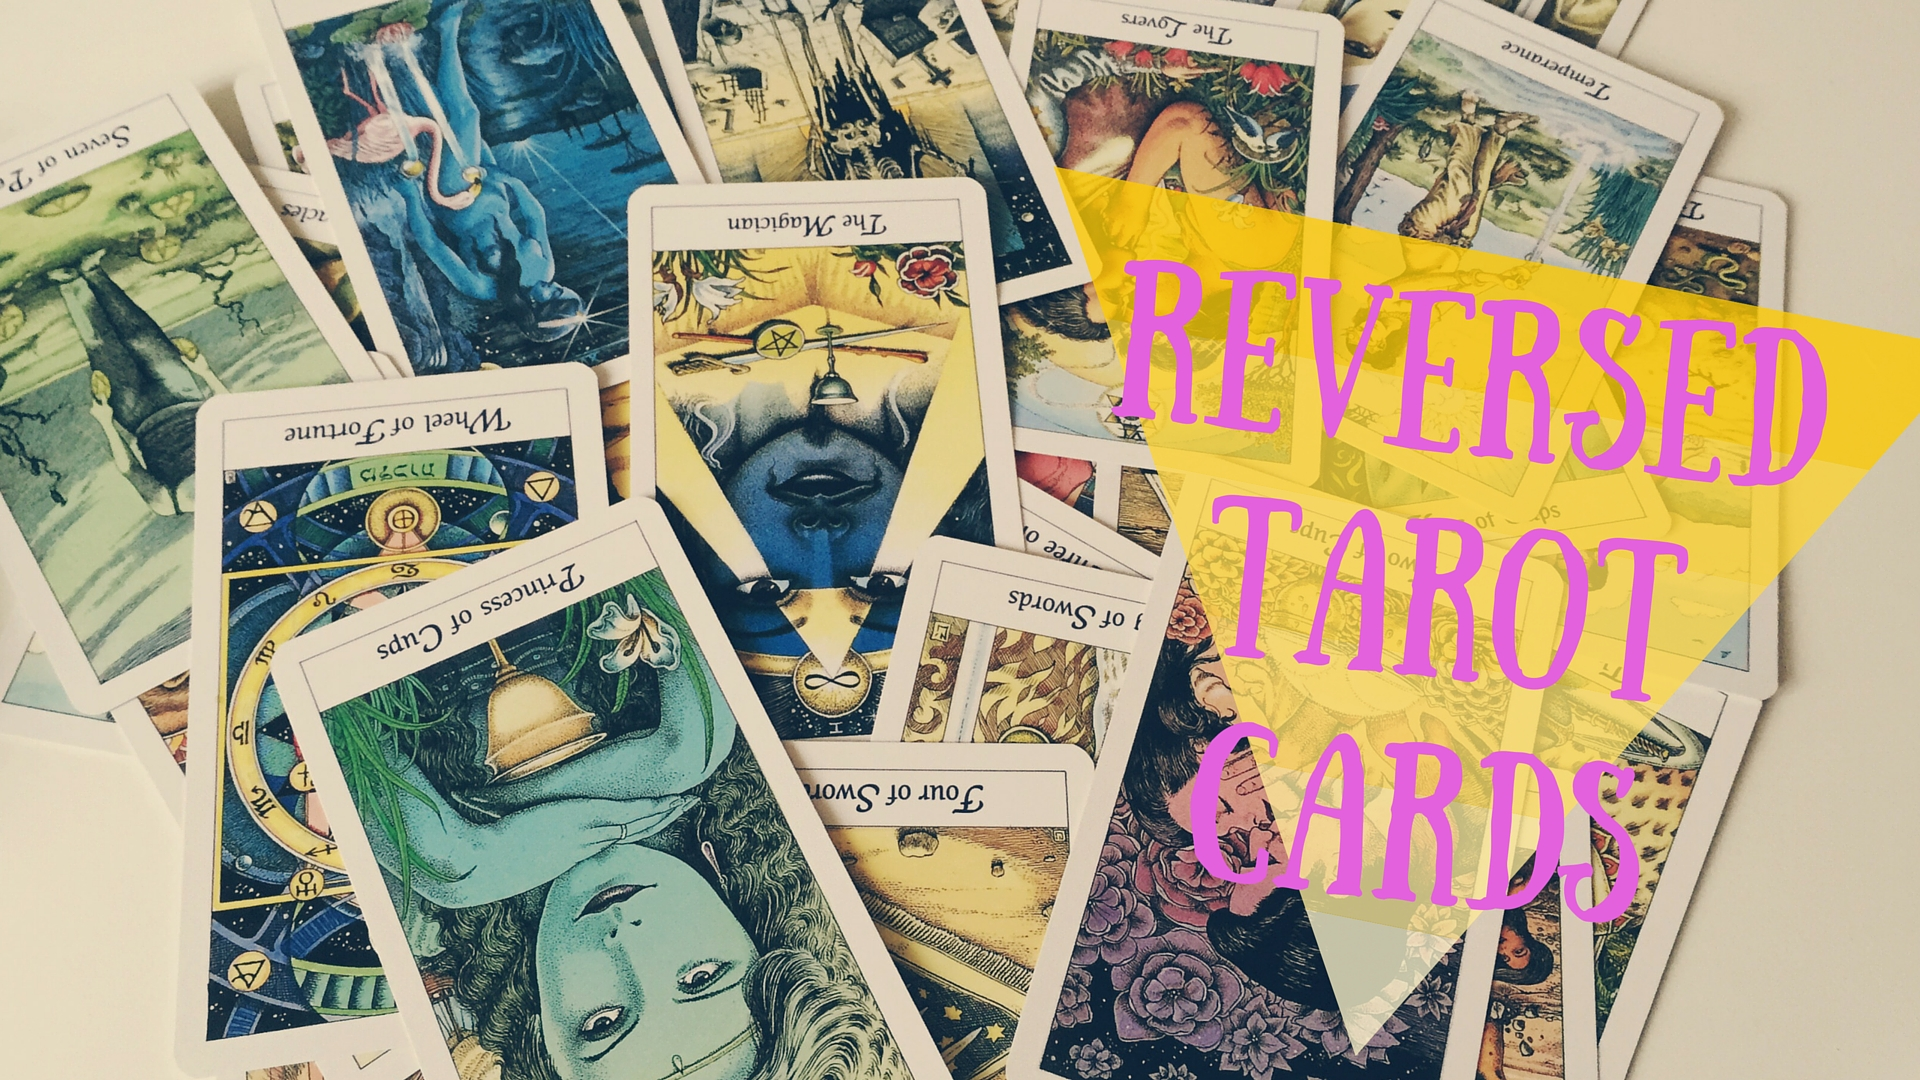 How to read reversed tarot cards with Vix from New Age Hipster! x